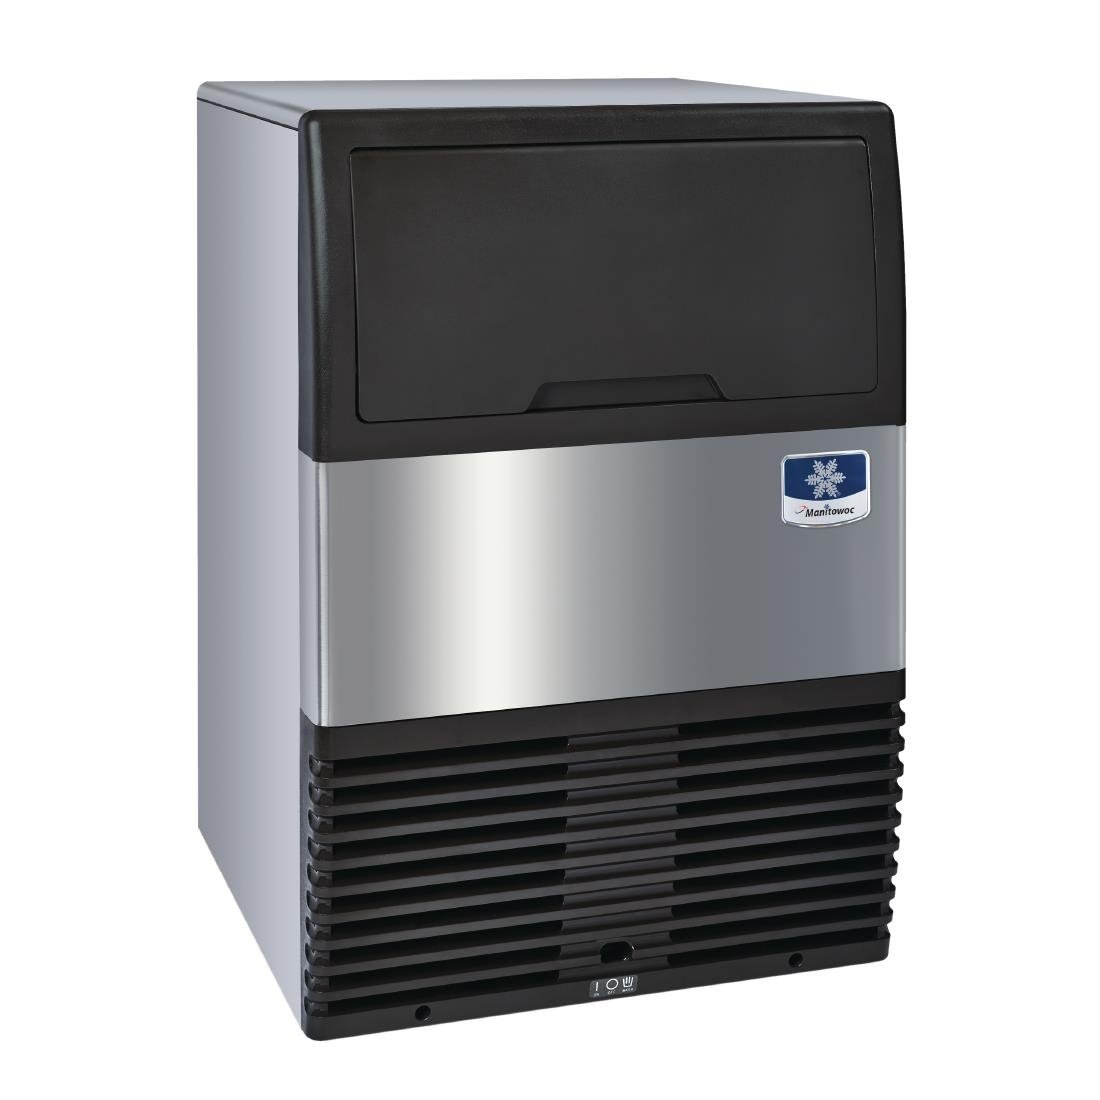 Image of Manitowoc Sotto Integral Undercounter Air-cooled Ice Maker UGP040A